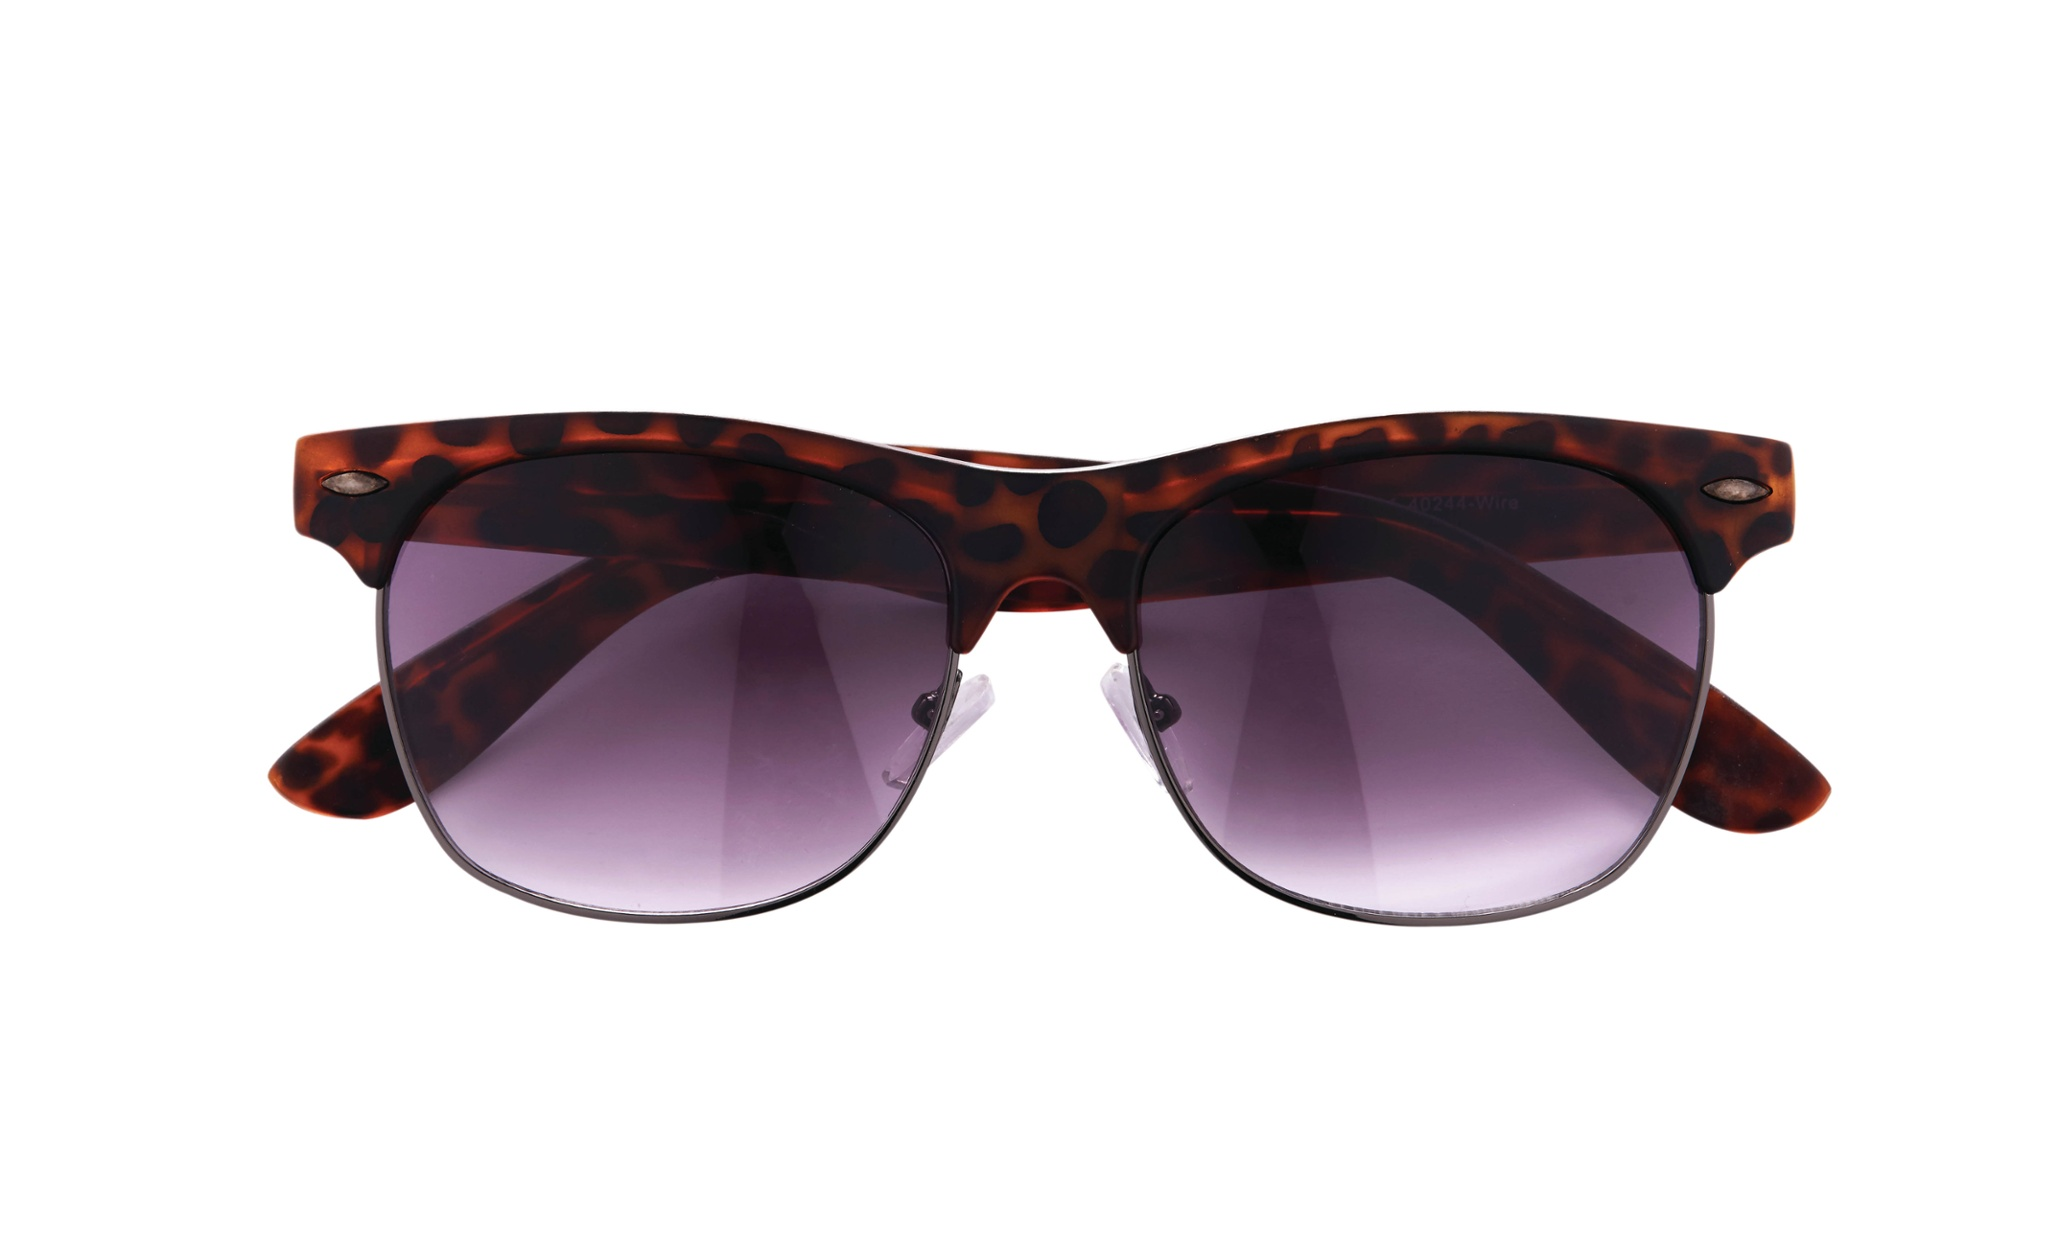 Men's sunglasses: the wish list – in pictures